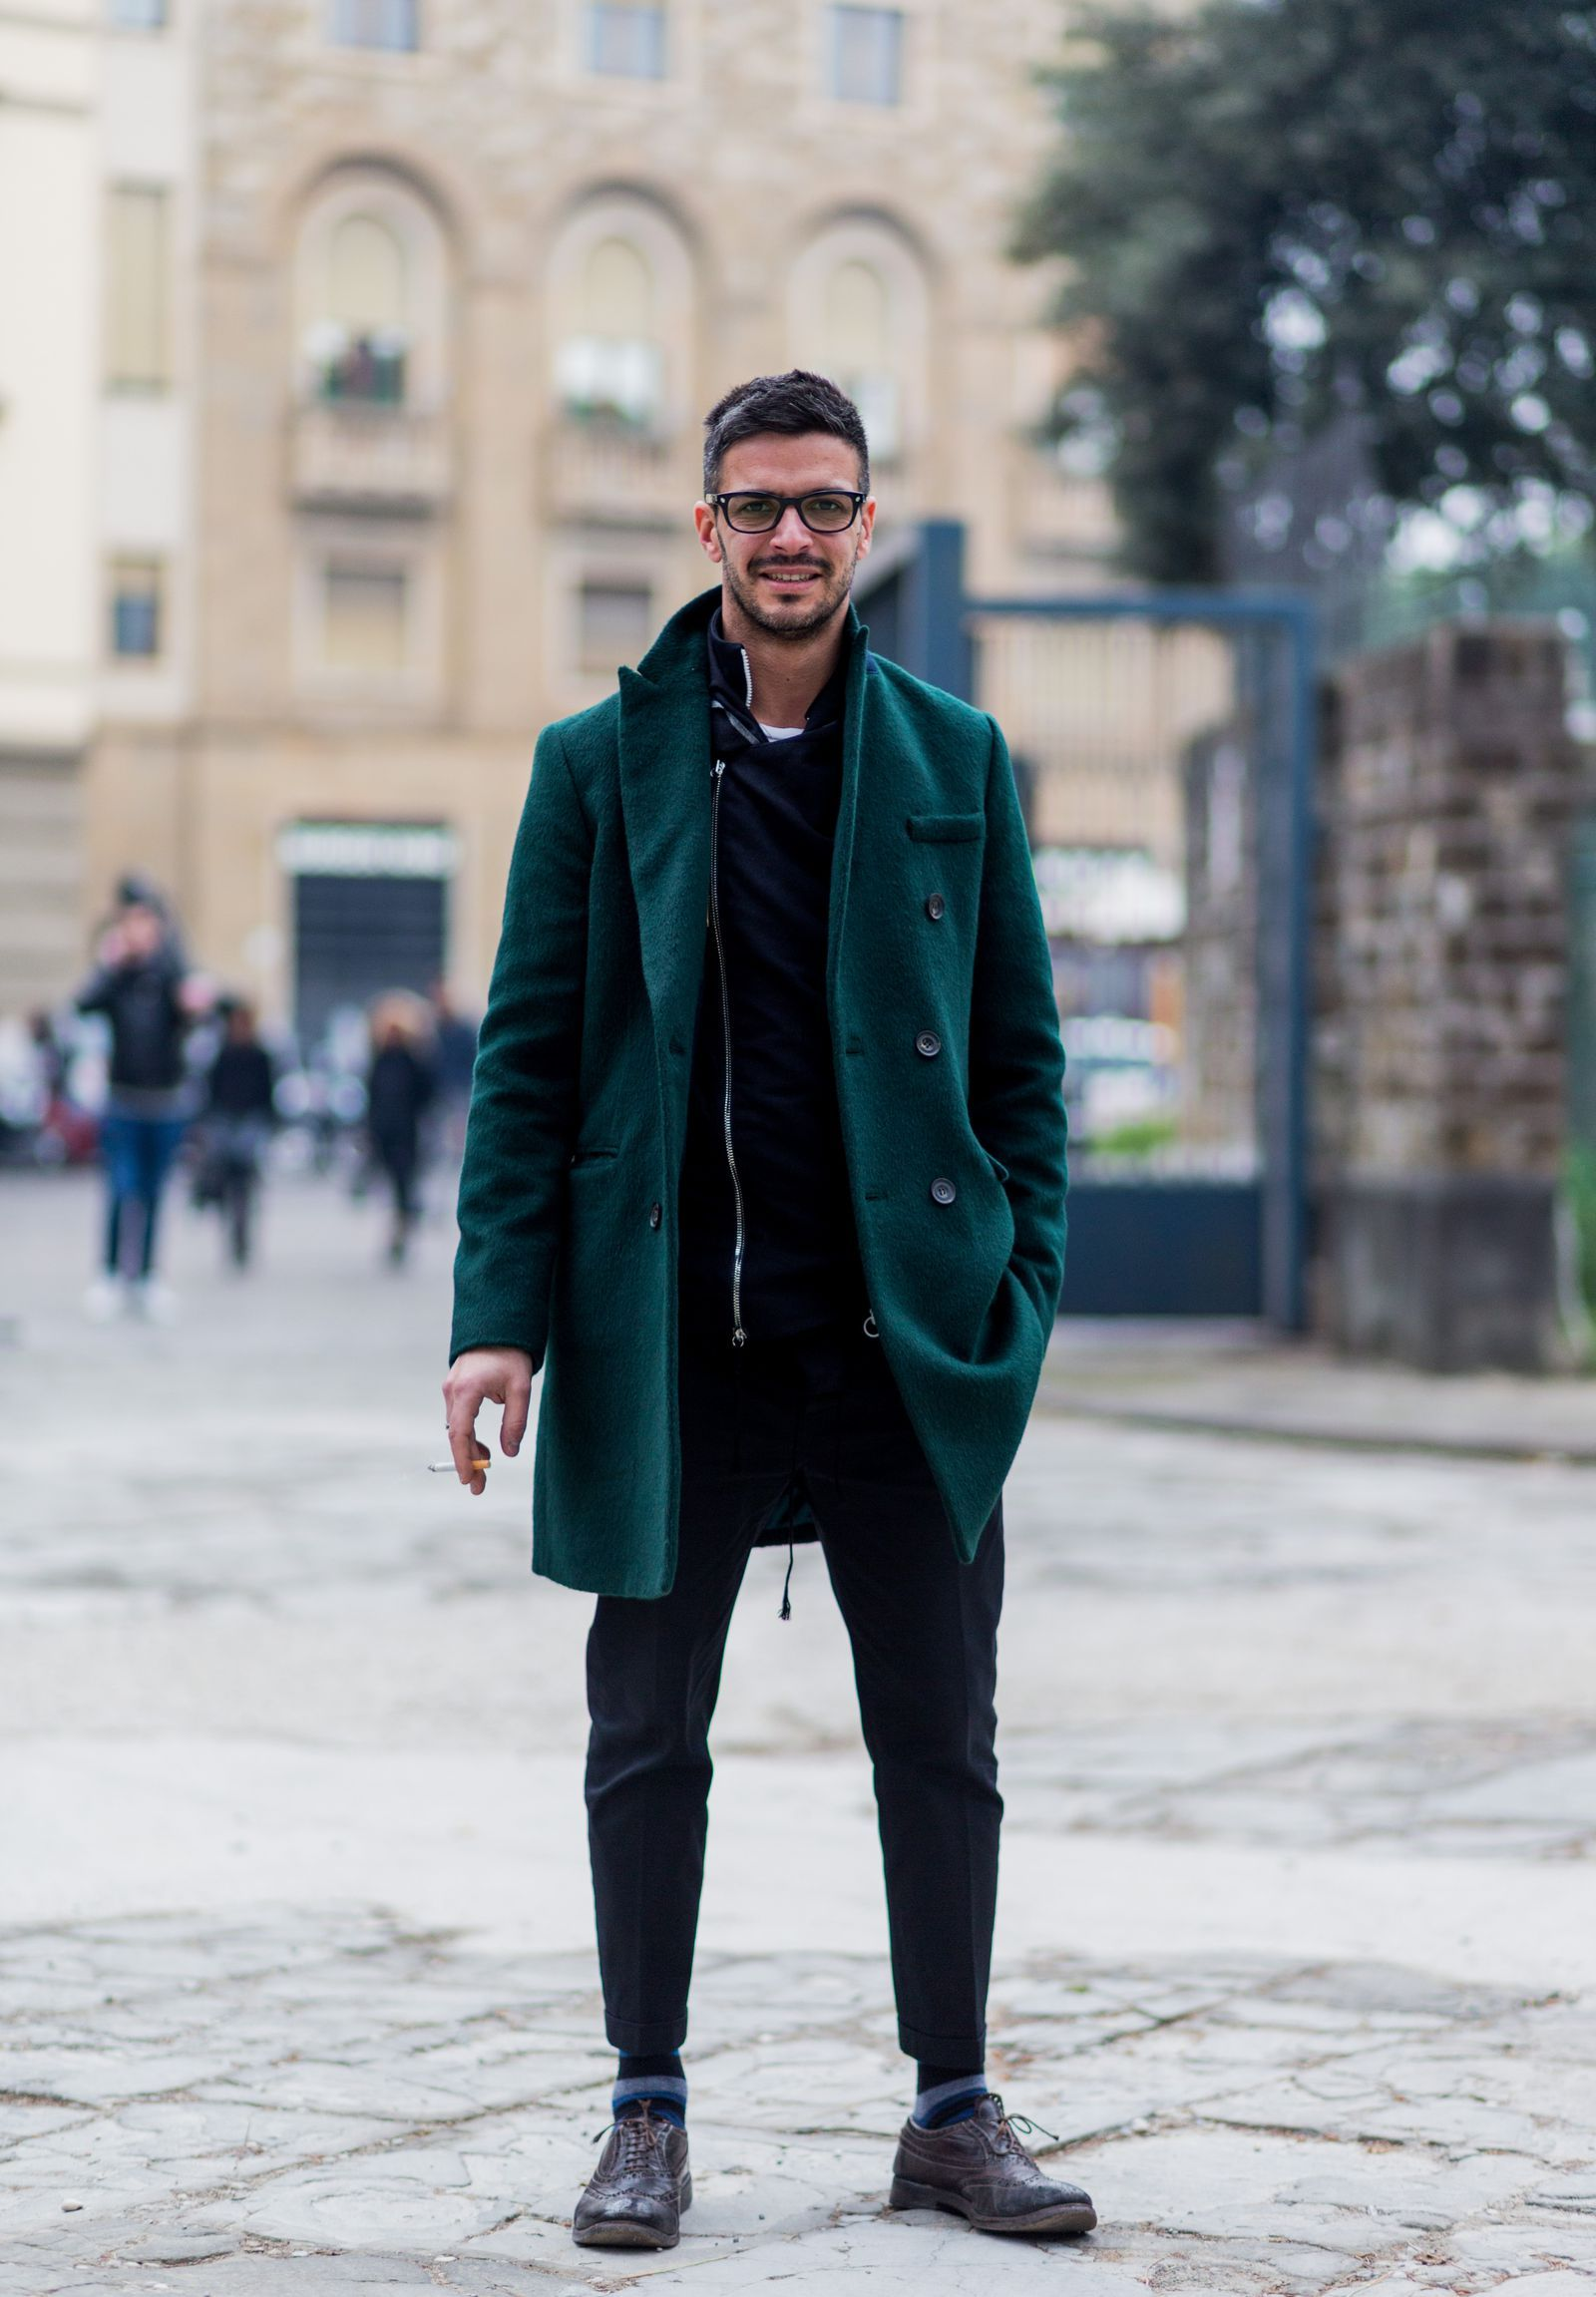 The Best Street Style From Italy Mens Fashion Week Italian Mens Fashion Italy Street Fashion Cool Street Fashion